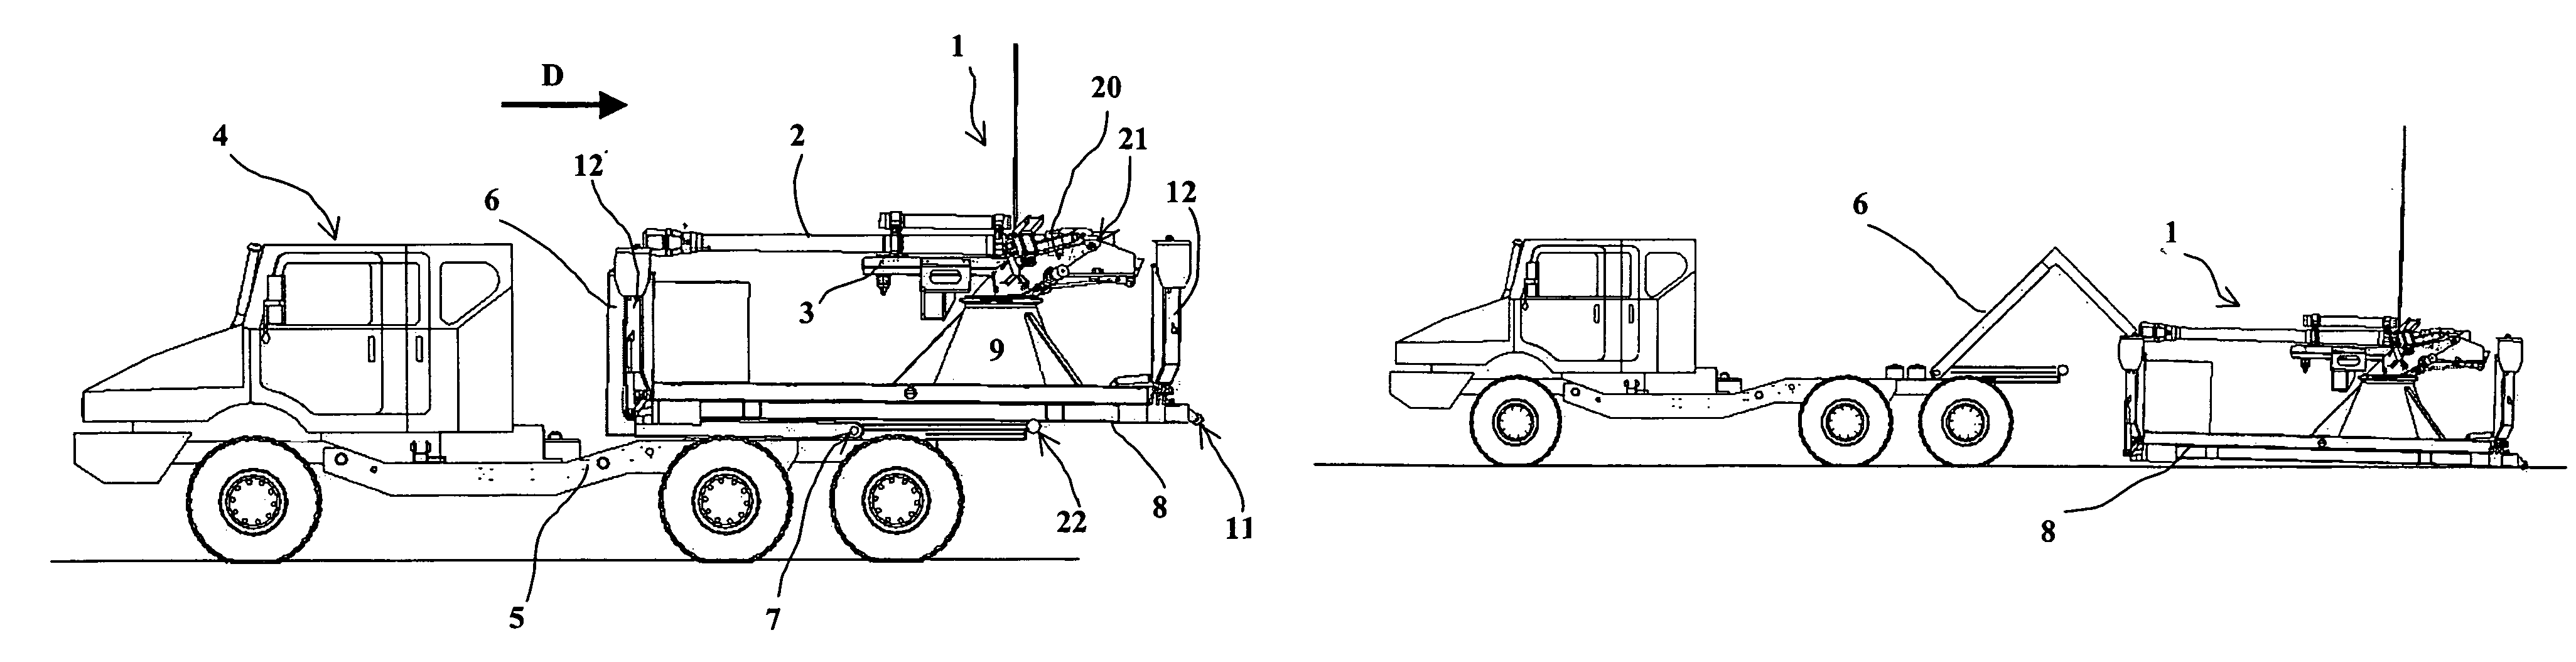 patent us7418897 weapon system that can be carried by a truck